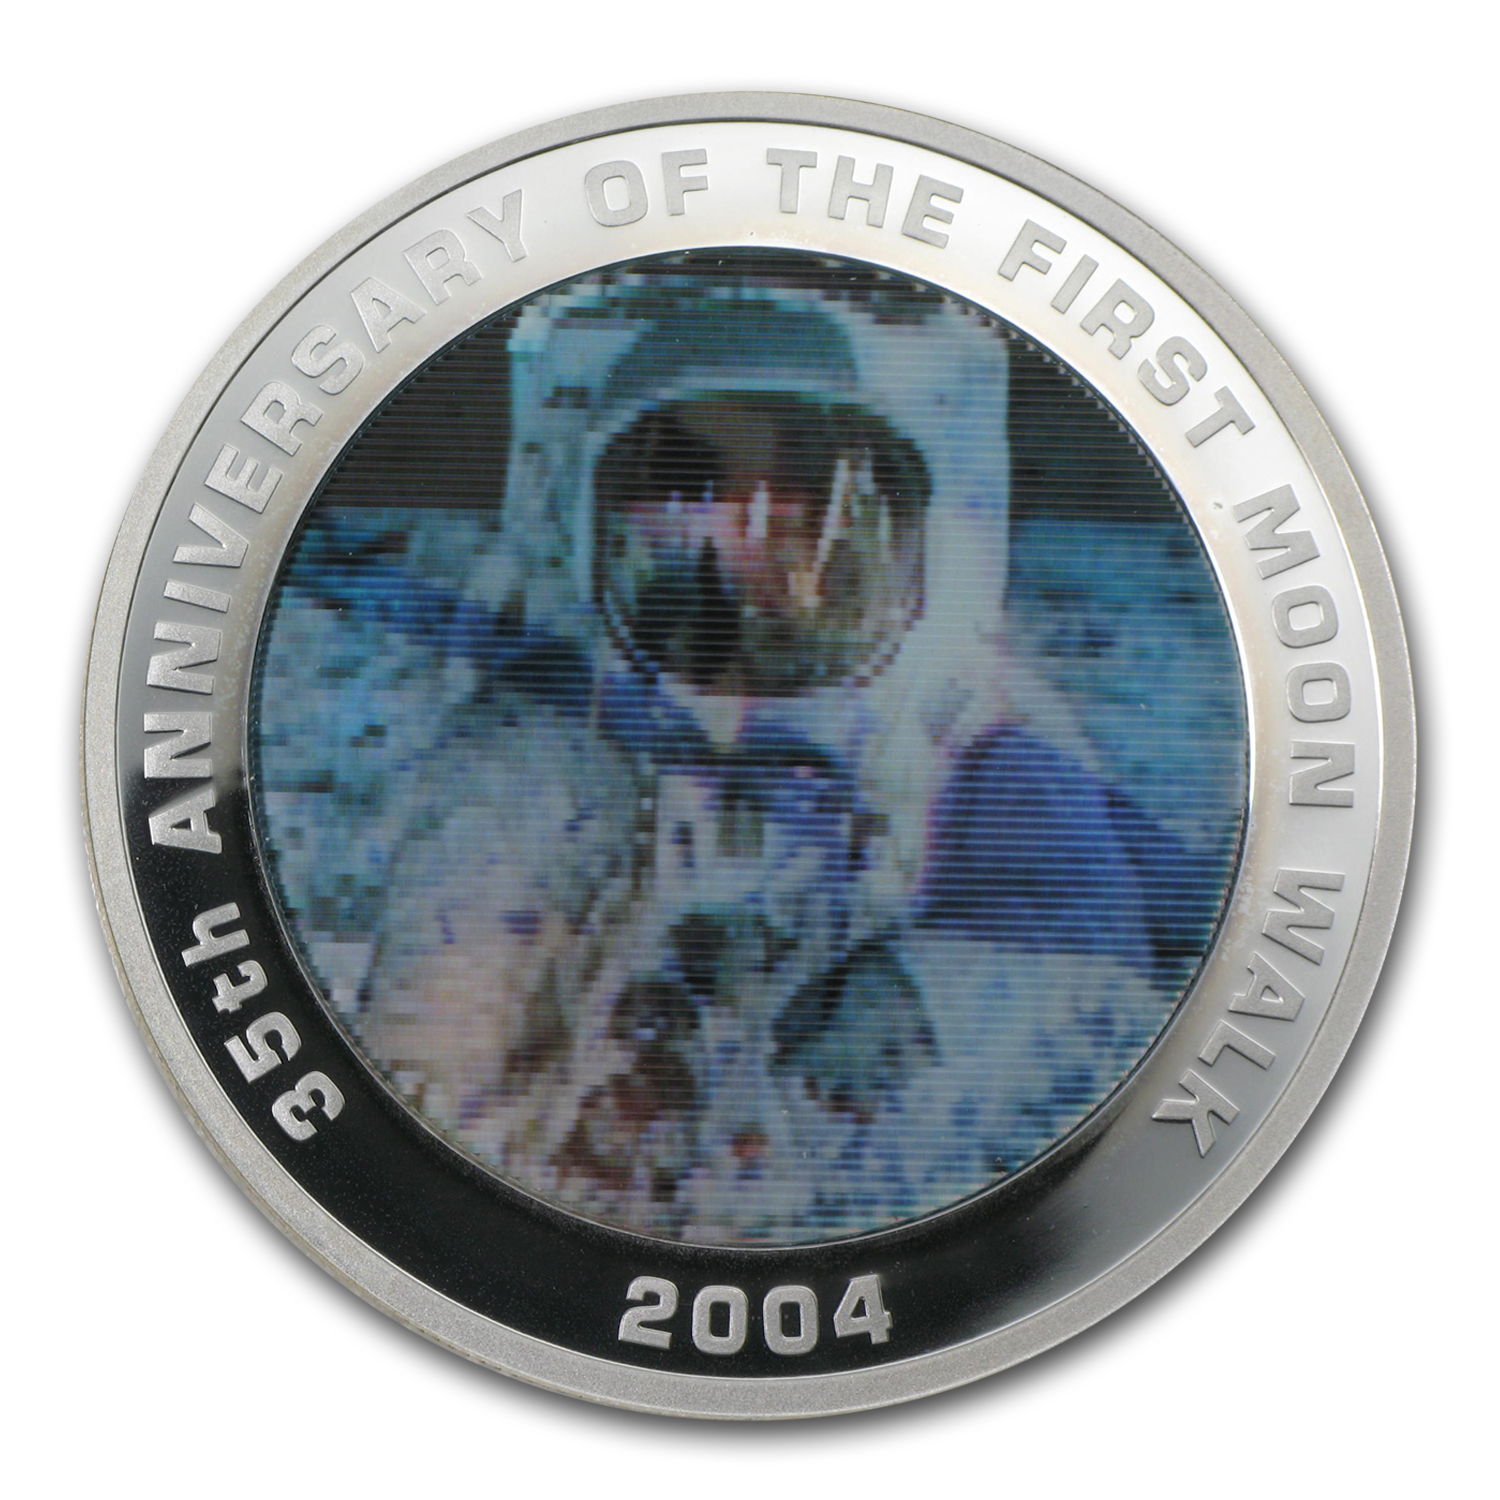 2004 1 oz Silver 35th Anniversary of the First Moon Walk Proof